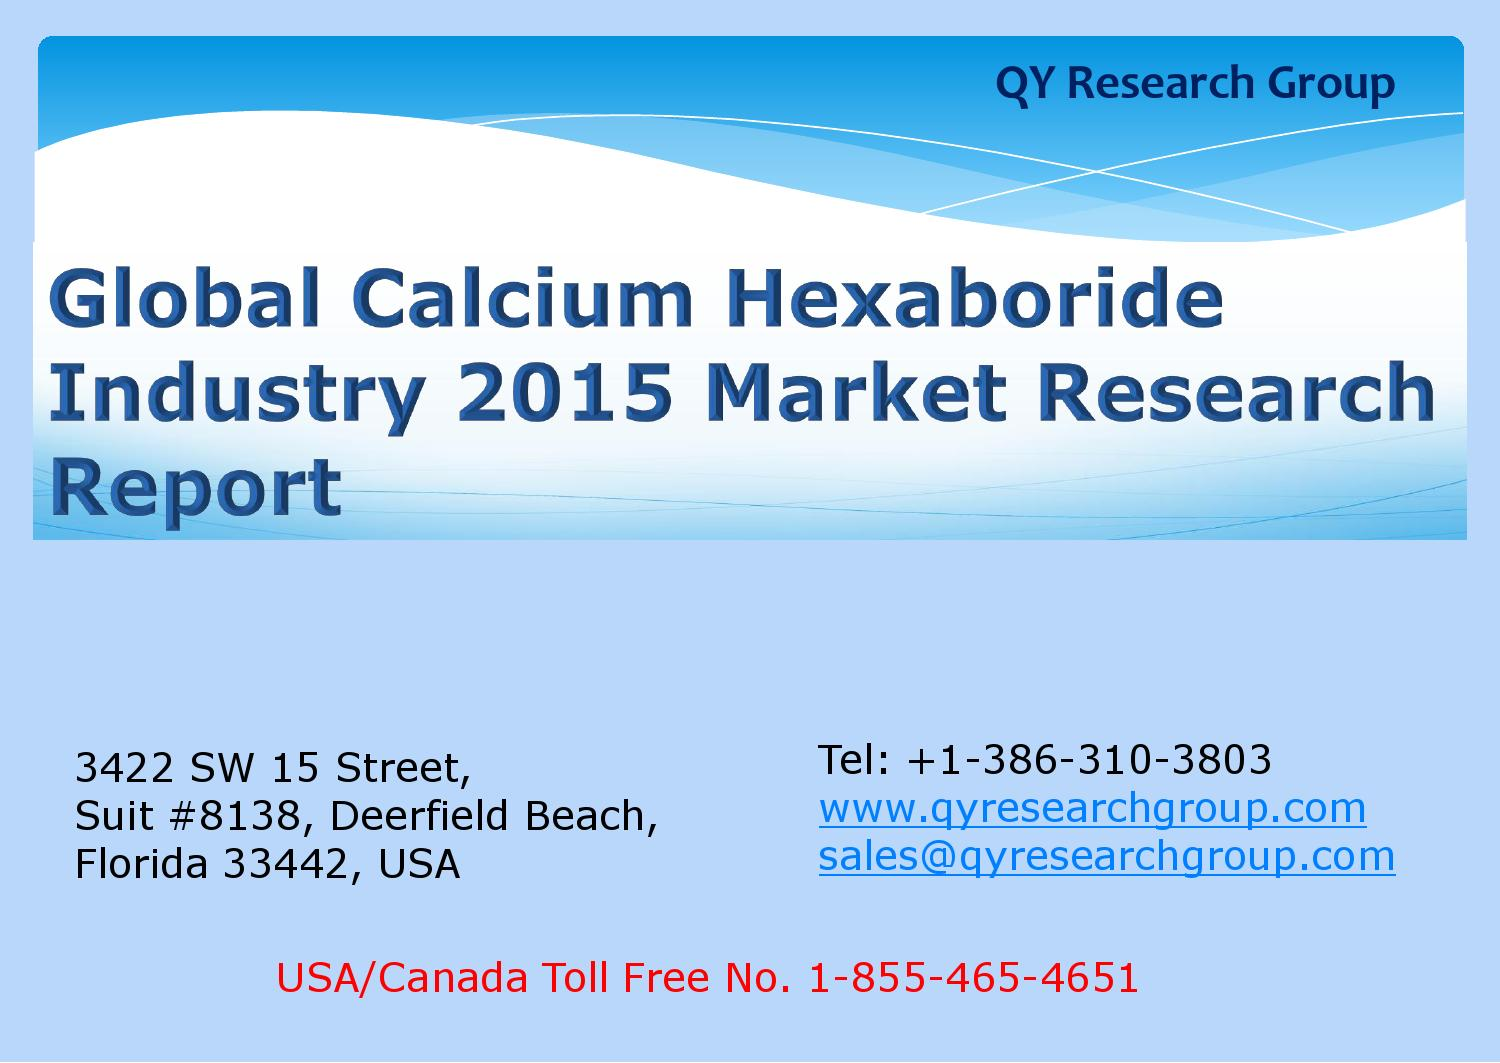 research paper gelatin Transparency market research gelatin market by raw material - global industry analysis, size, share, growth, trends and forecast 2012 2018 published date.